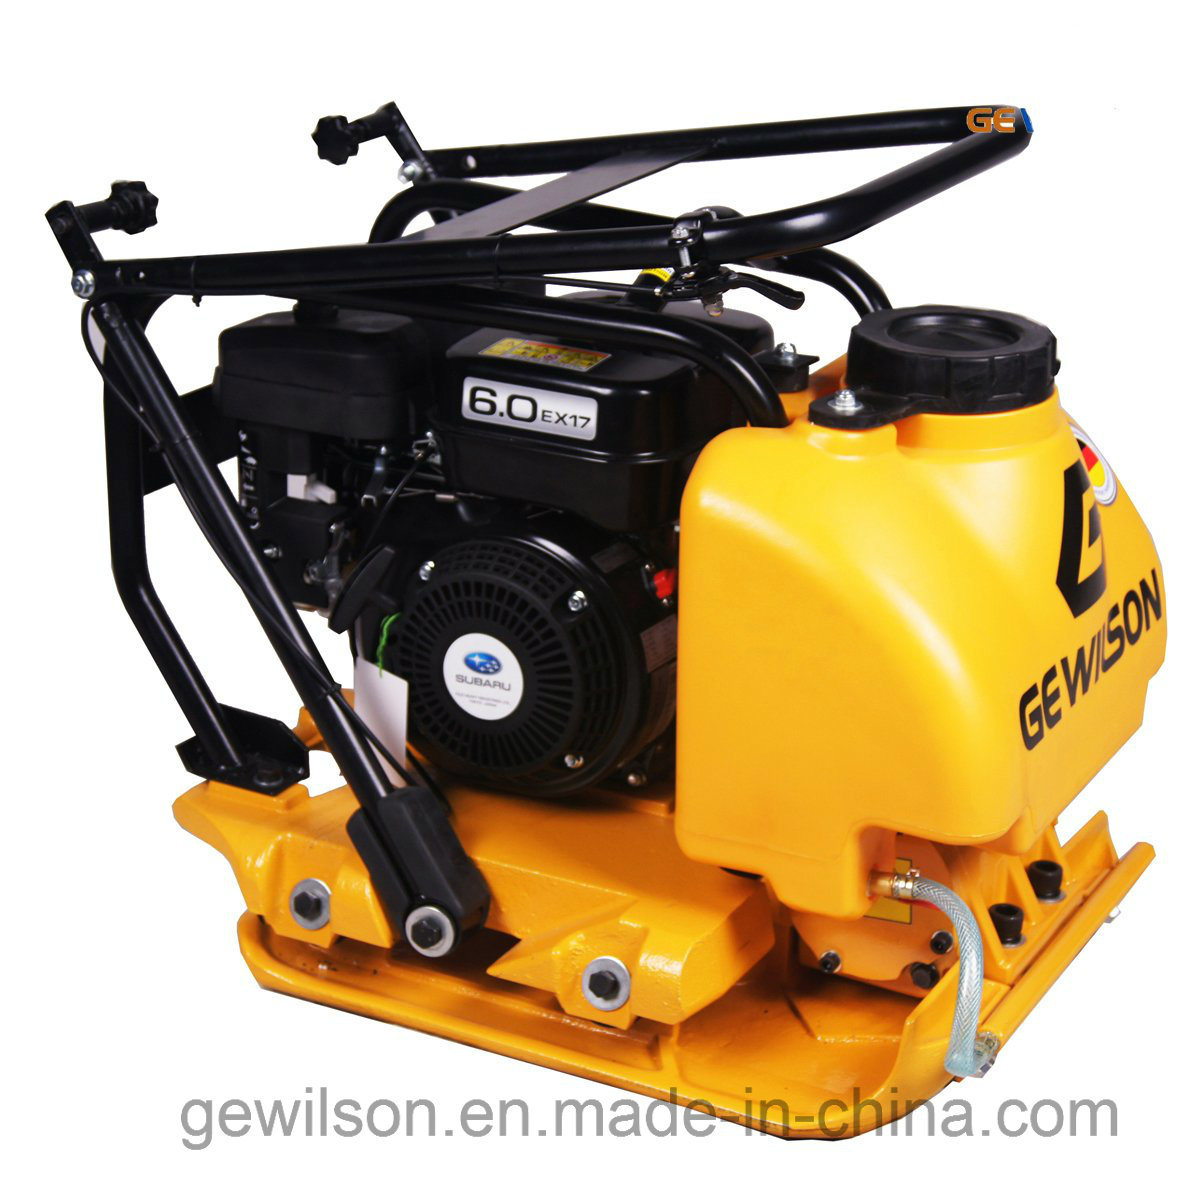 Plate Compactor with Spare Parts with Clutch